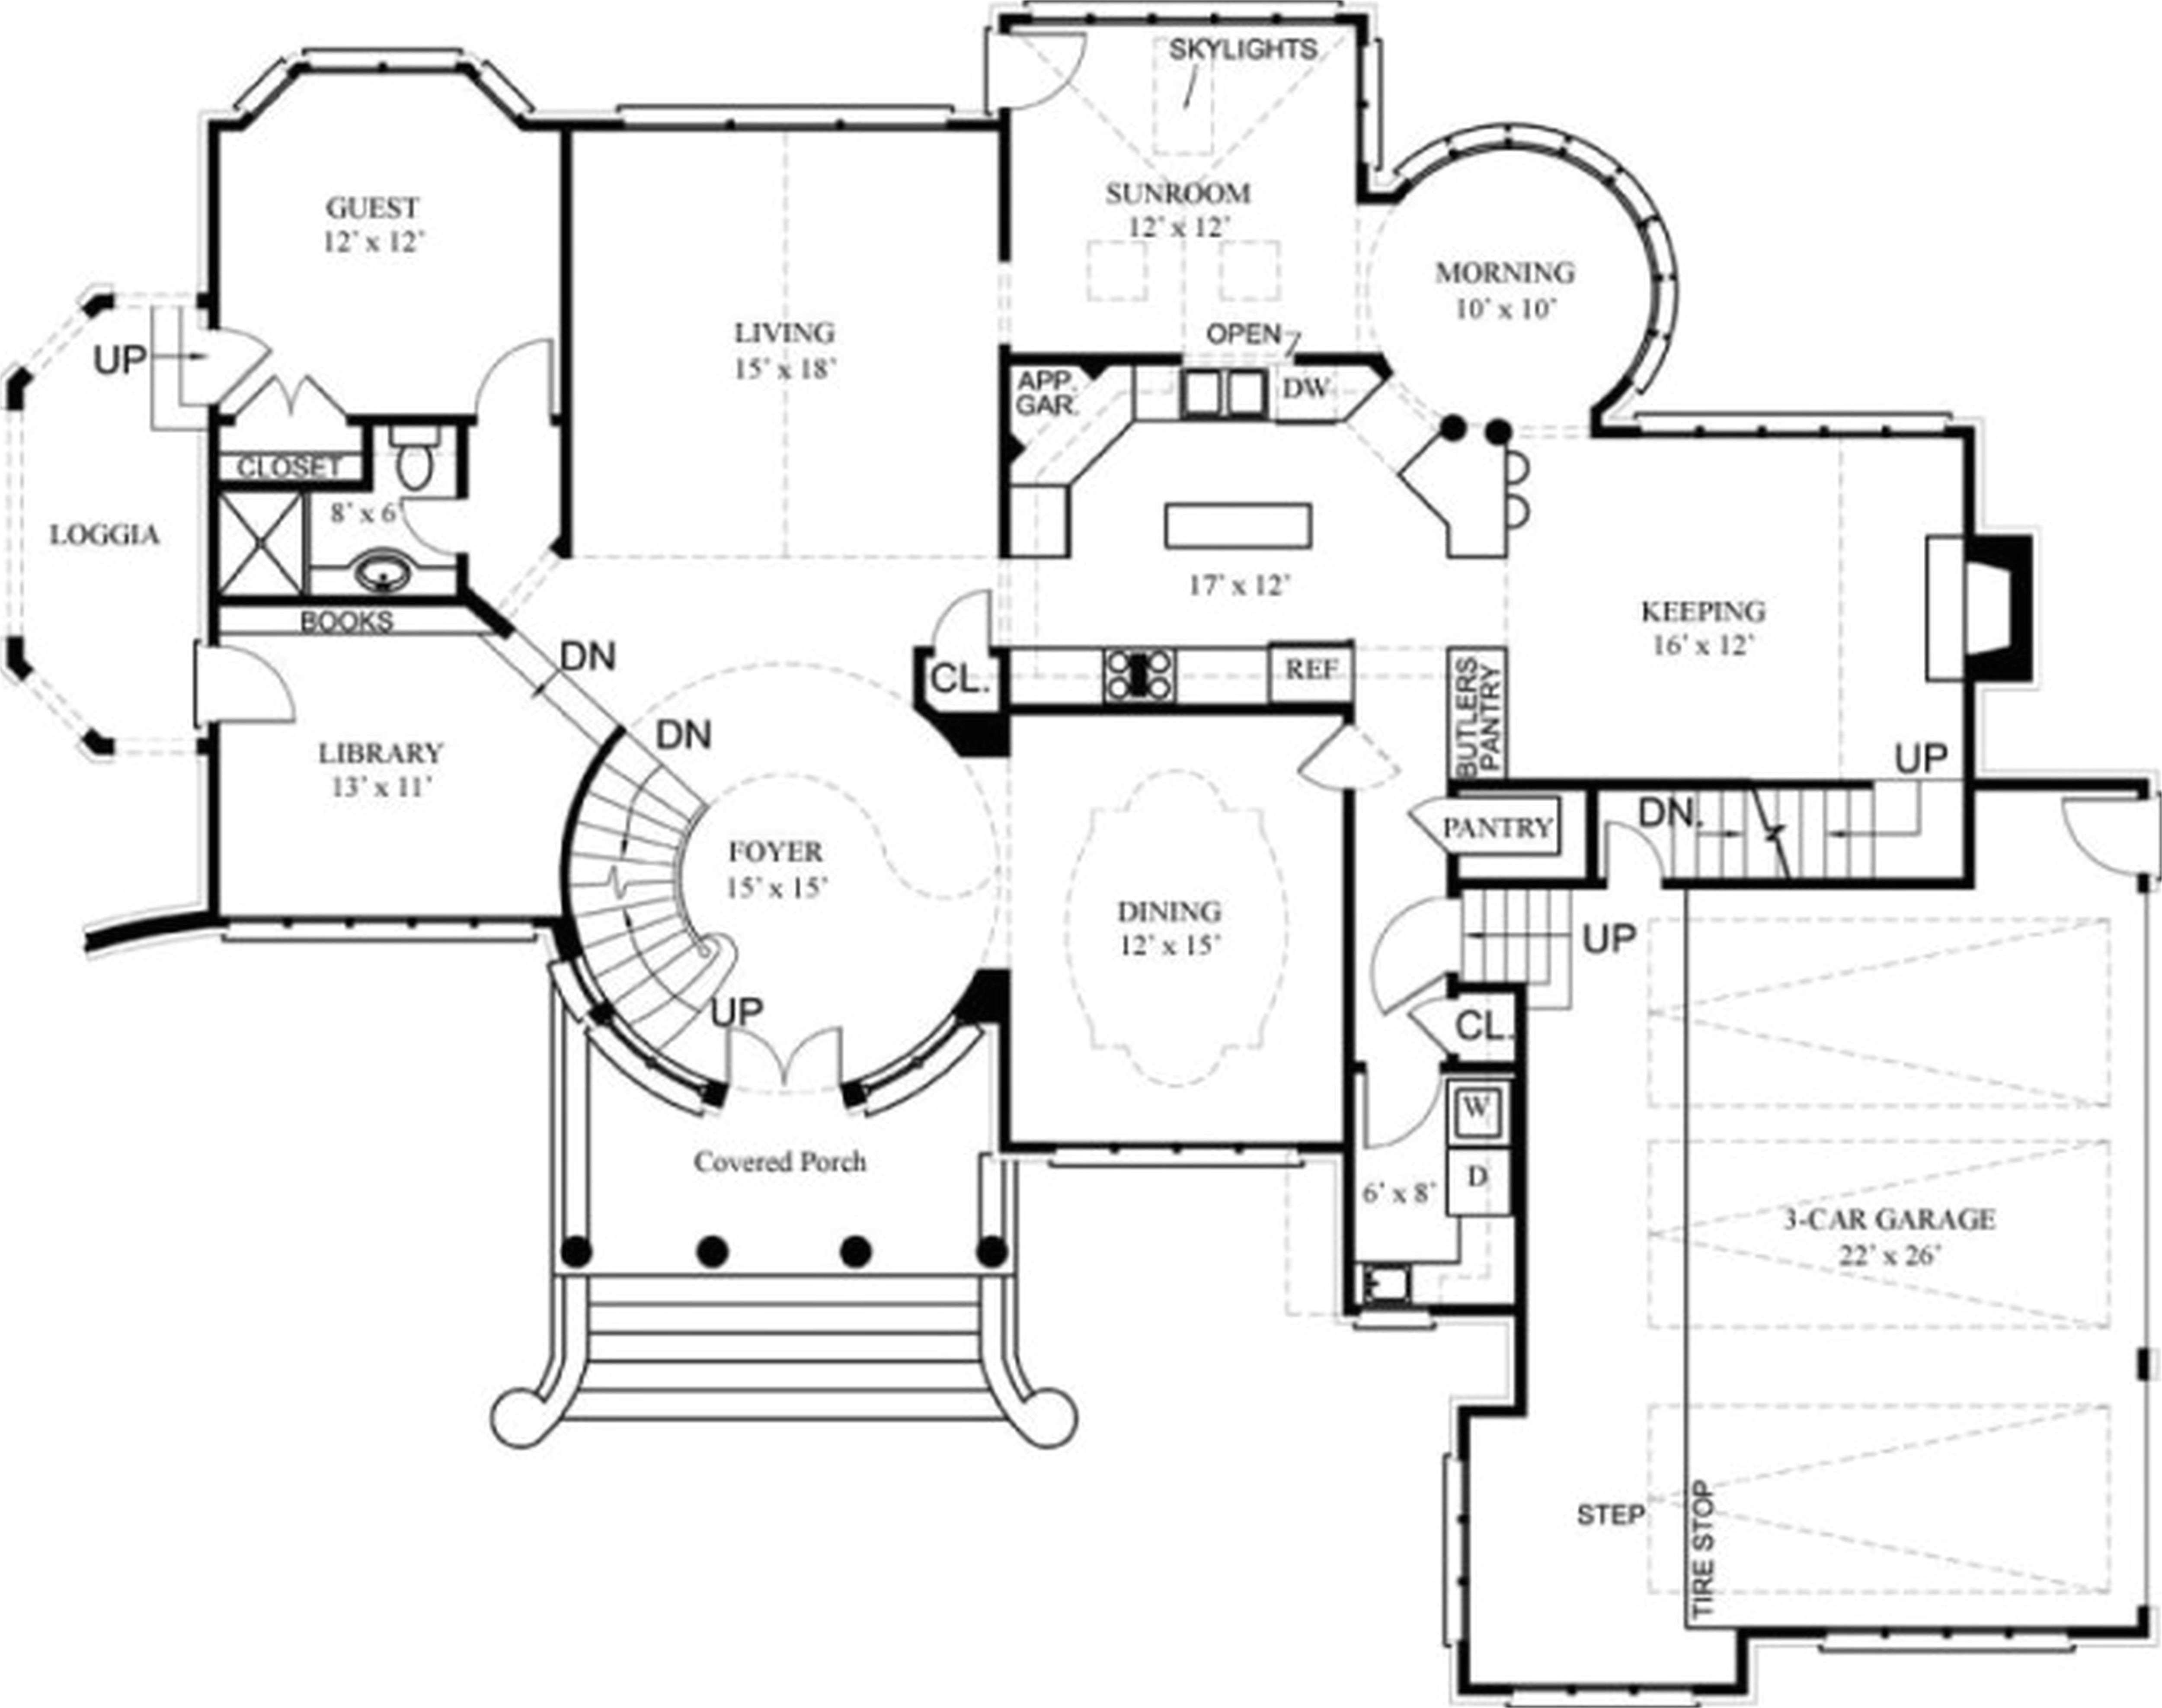 designs and floor plans tritmonk design photo gallery for modern bedroom interior floor plan s layouts furniture drawing